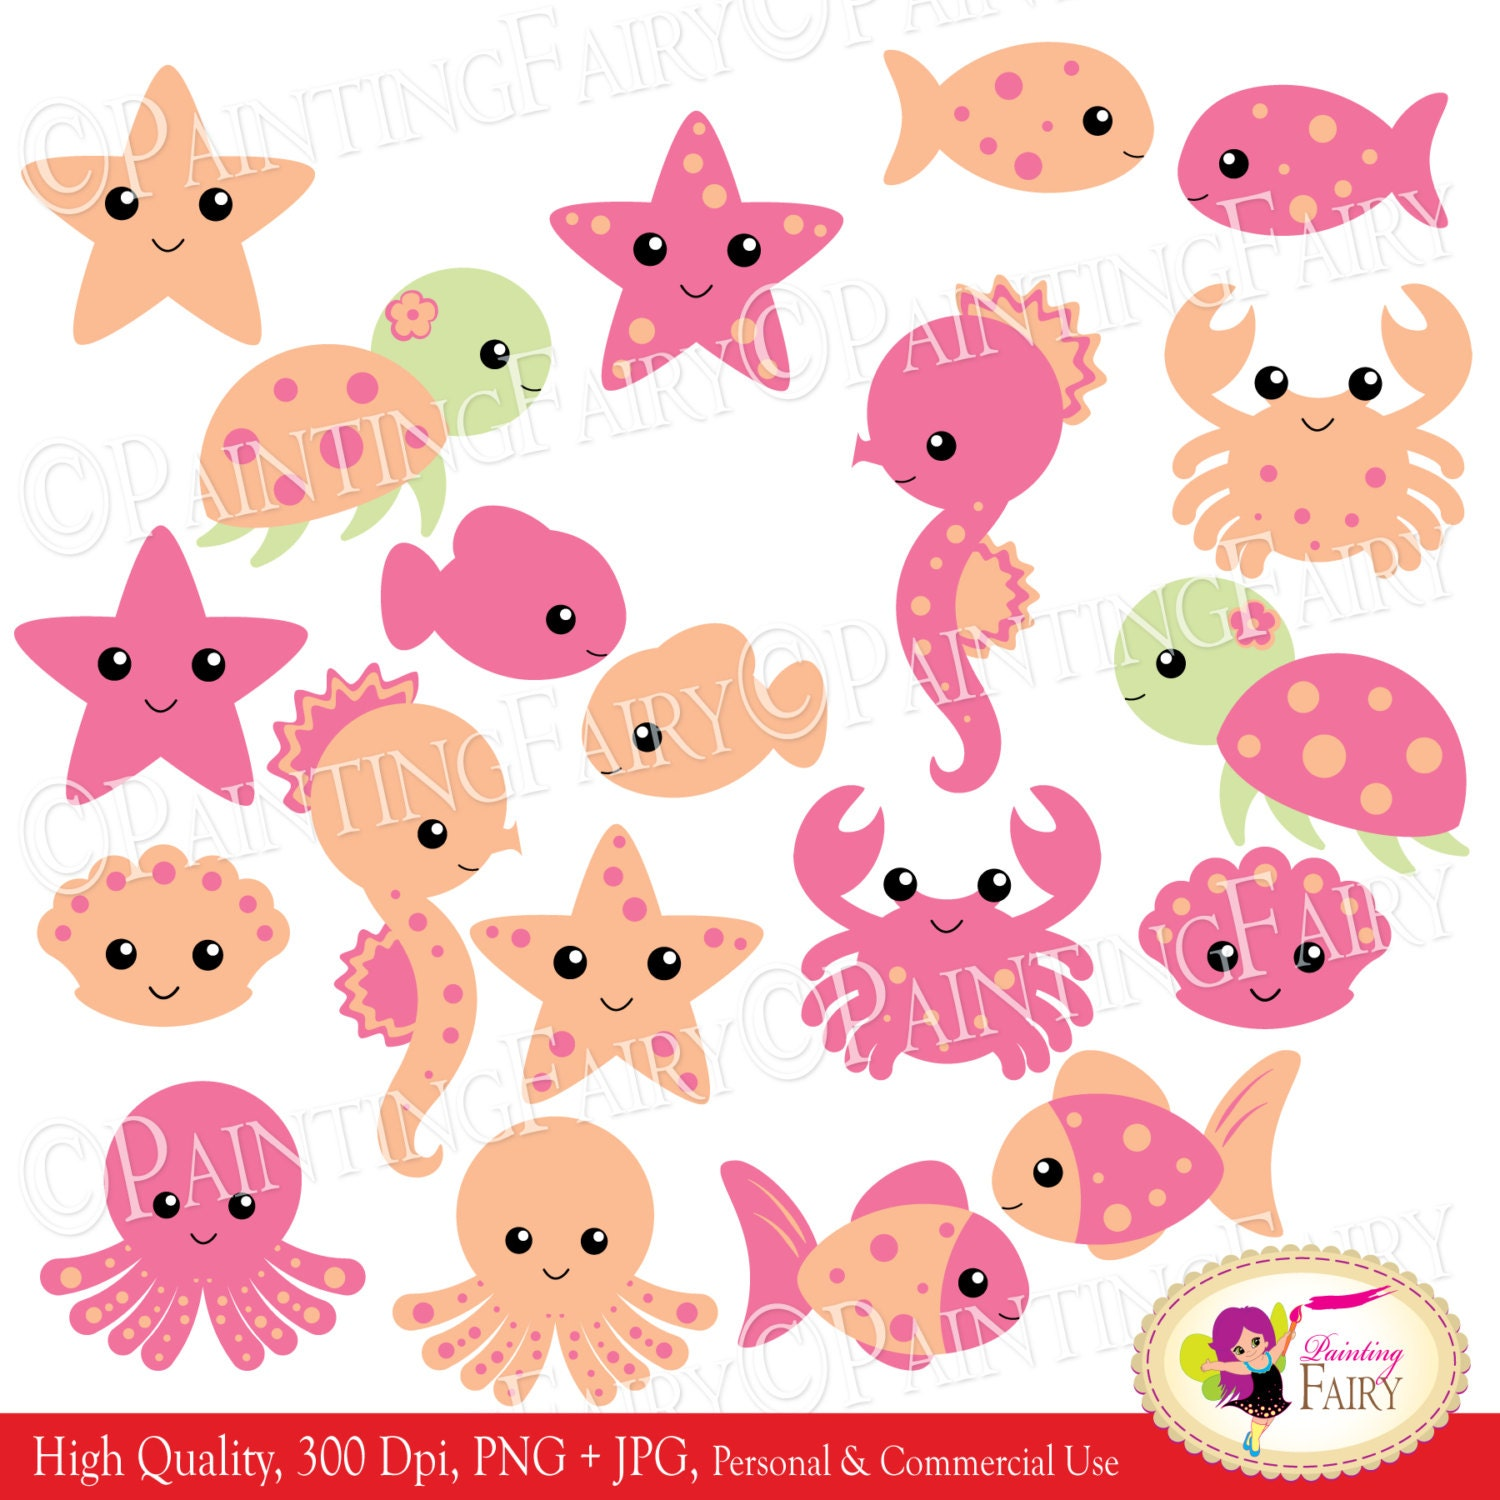 INSTANT DOWNLOAD clipart Cute Under the by PaintingFairyClipart